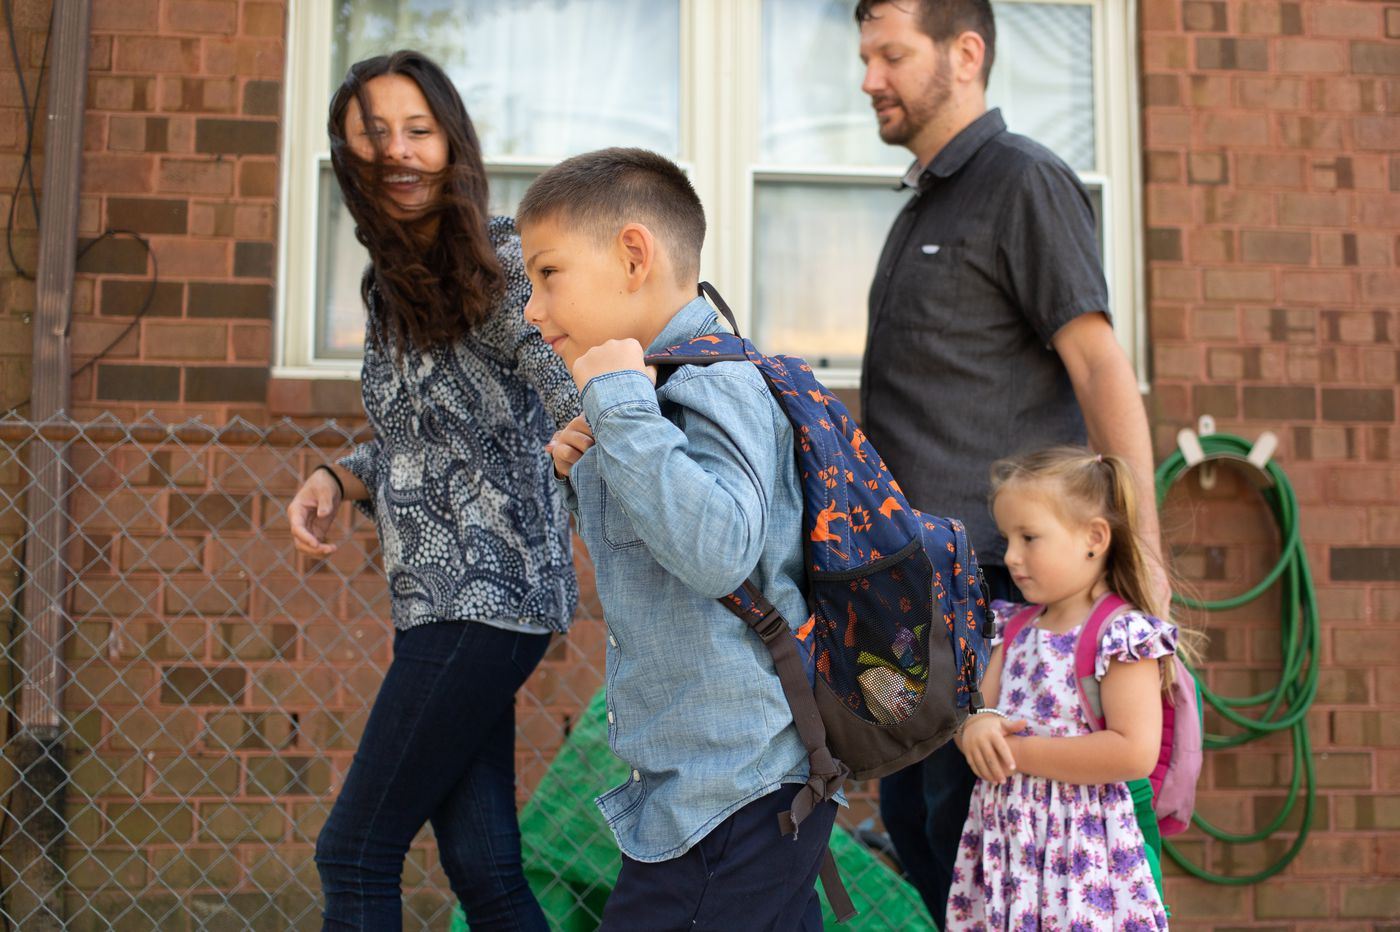 Parents consider buying bulletproof backpacks as gun violence shapes their children's lives